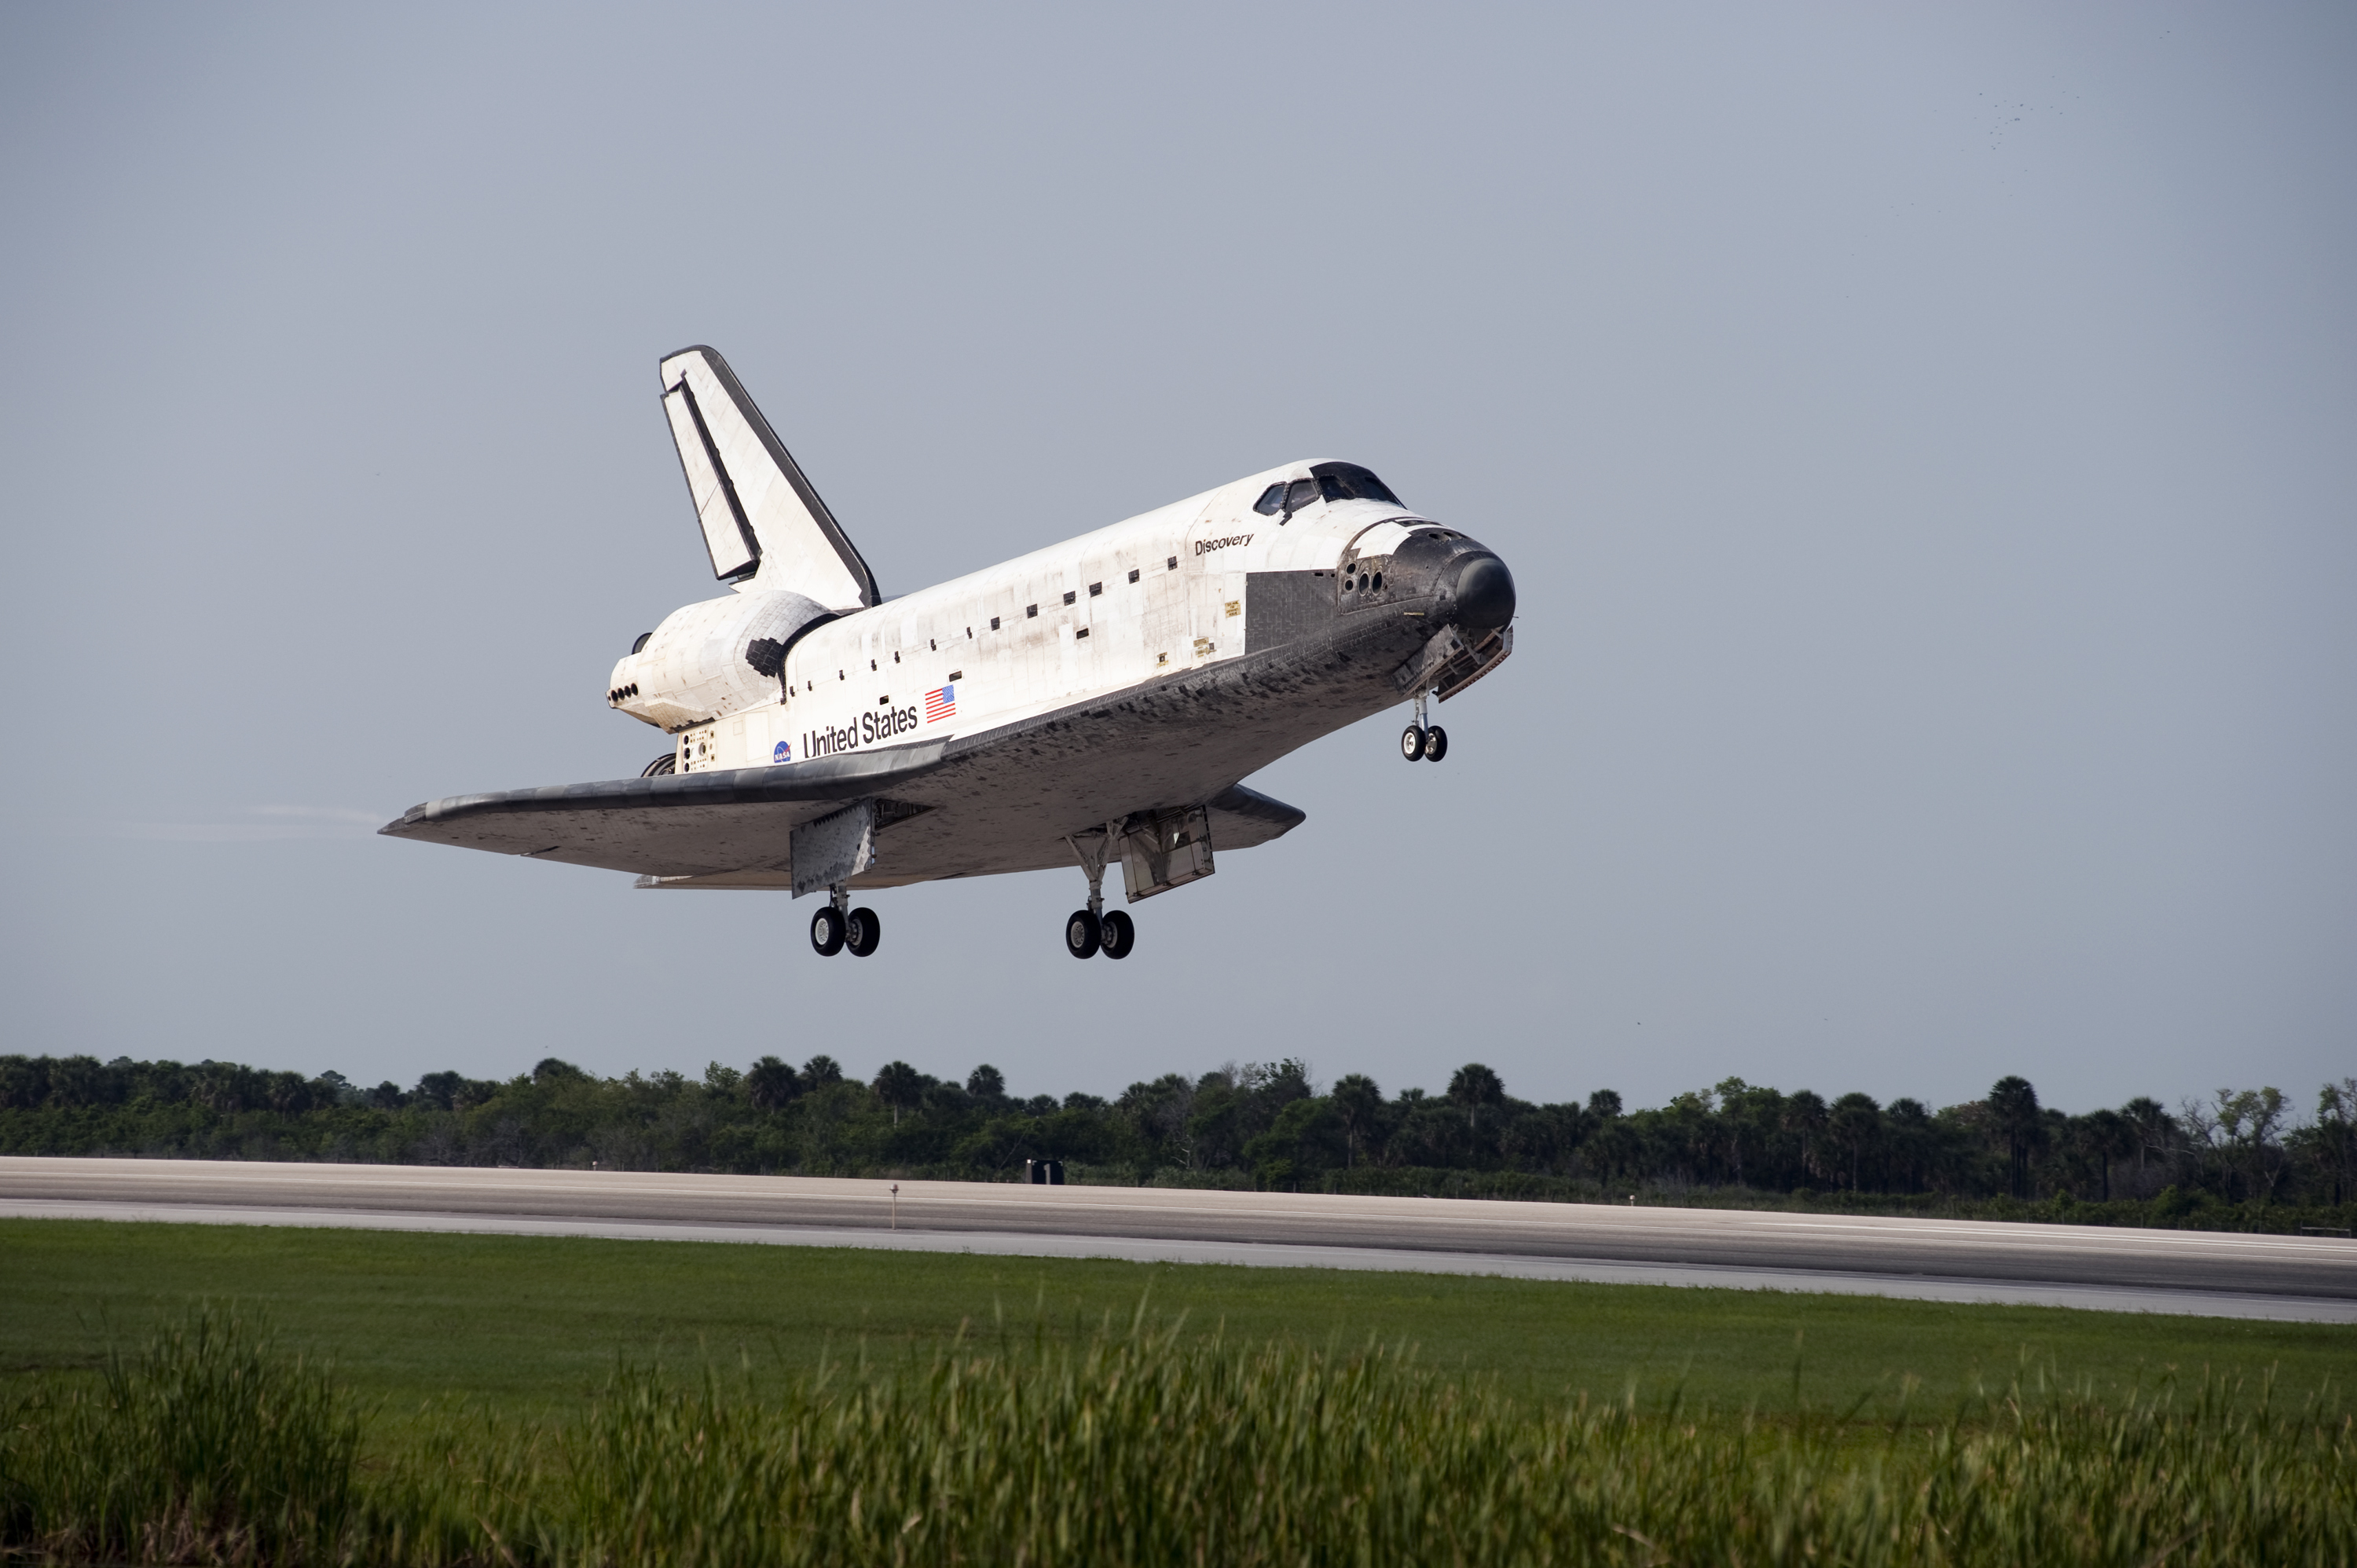 Space shuttle Discovery Landing At Nasa's Kennedy Space ...